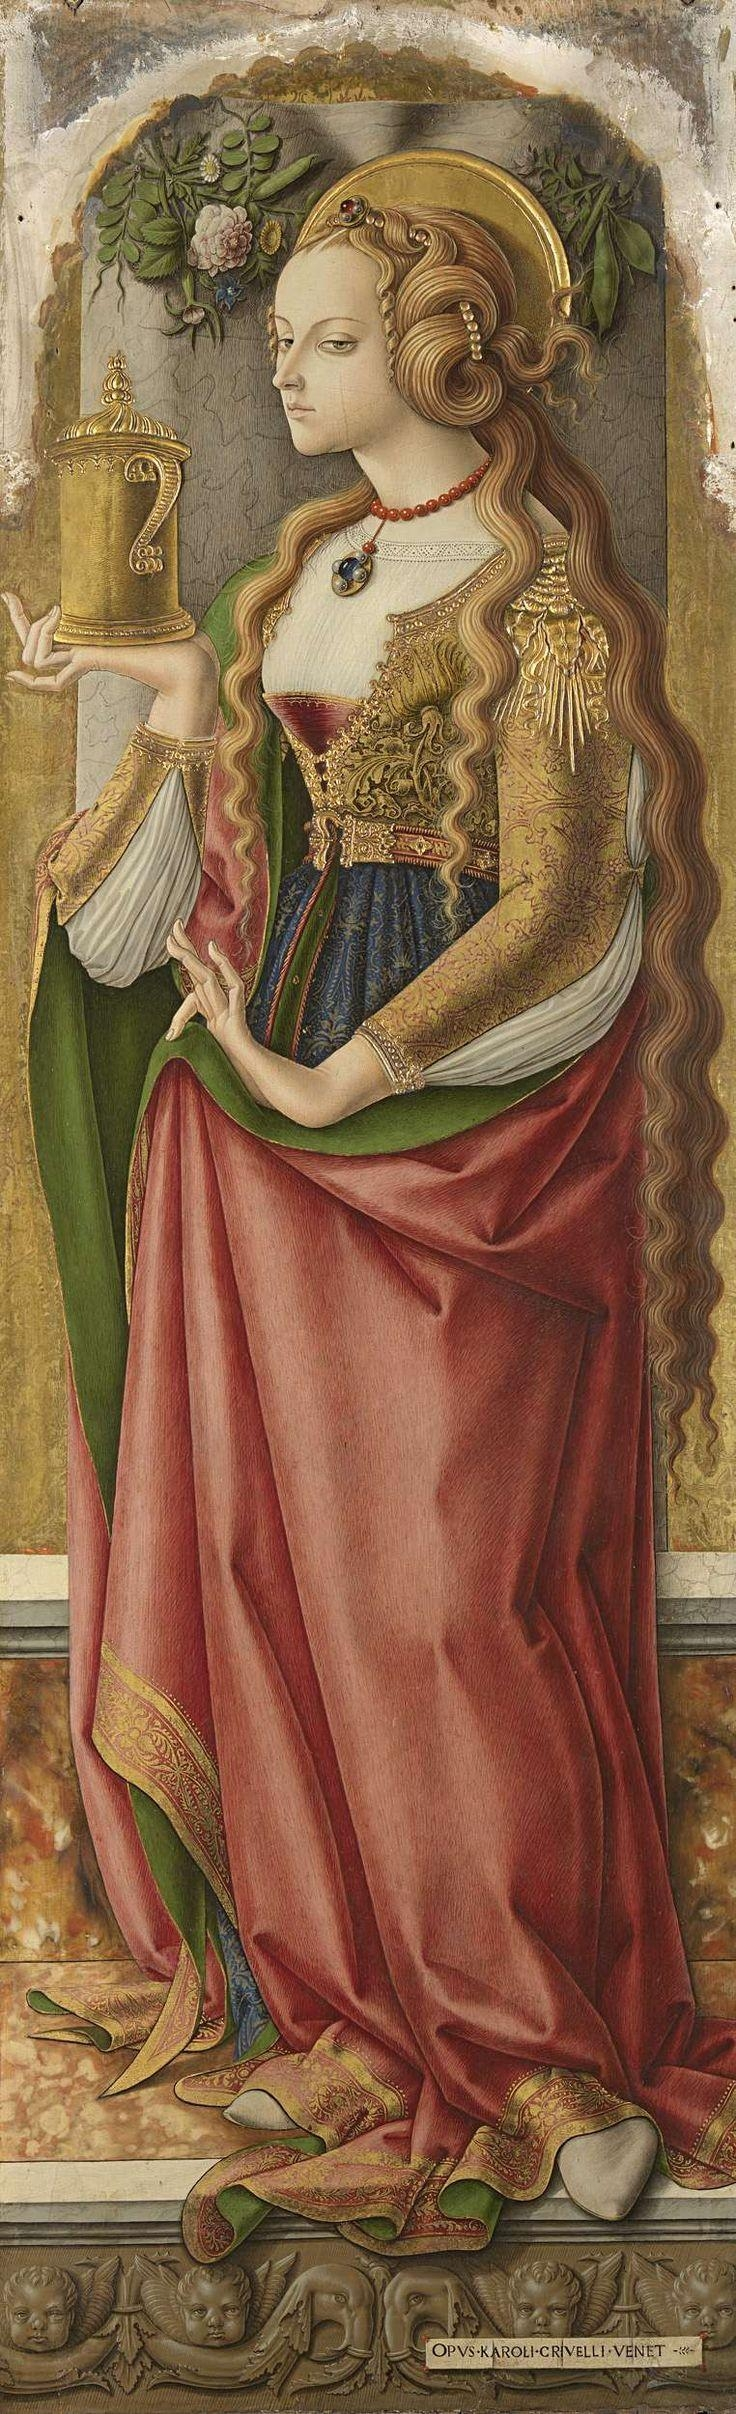 Best 25+ Italian Renaissance Art Ideas On Pinterest | Renaissance With Regard To Italian Renaissance Wall Art (Image 11 of 20)